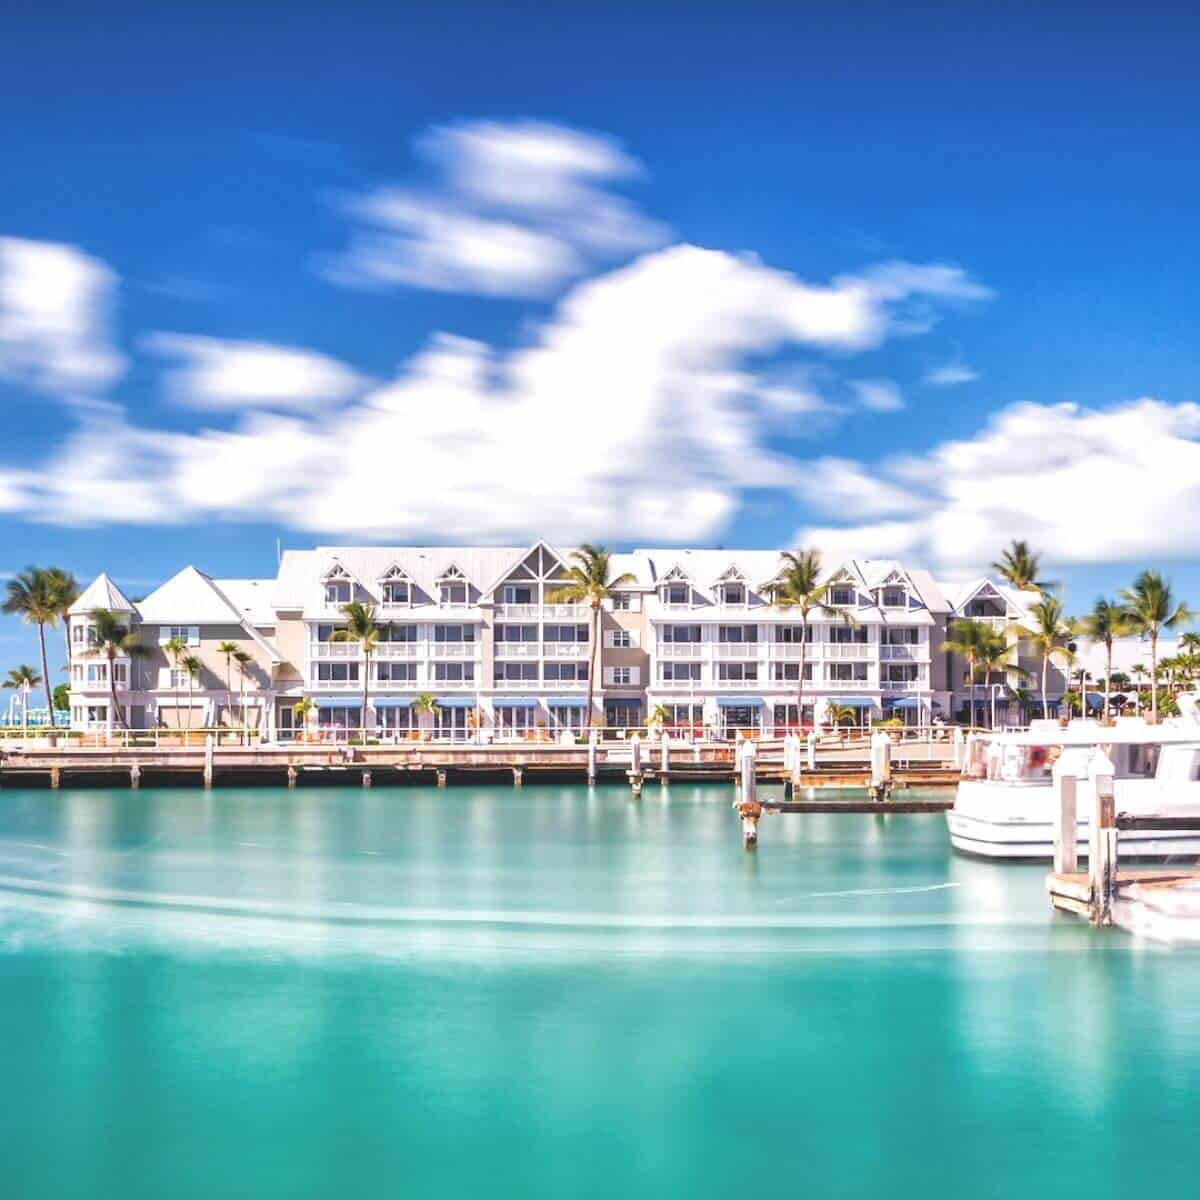 View of the exterior of Margaritaville Key West Resort on the water.